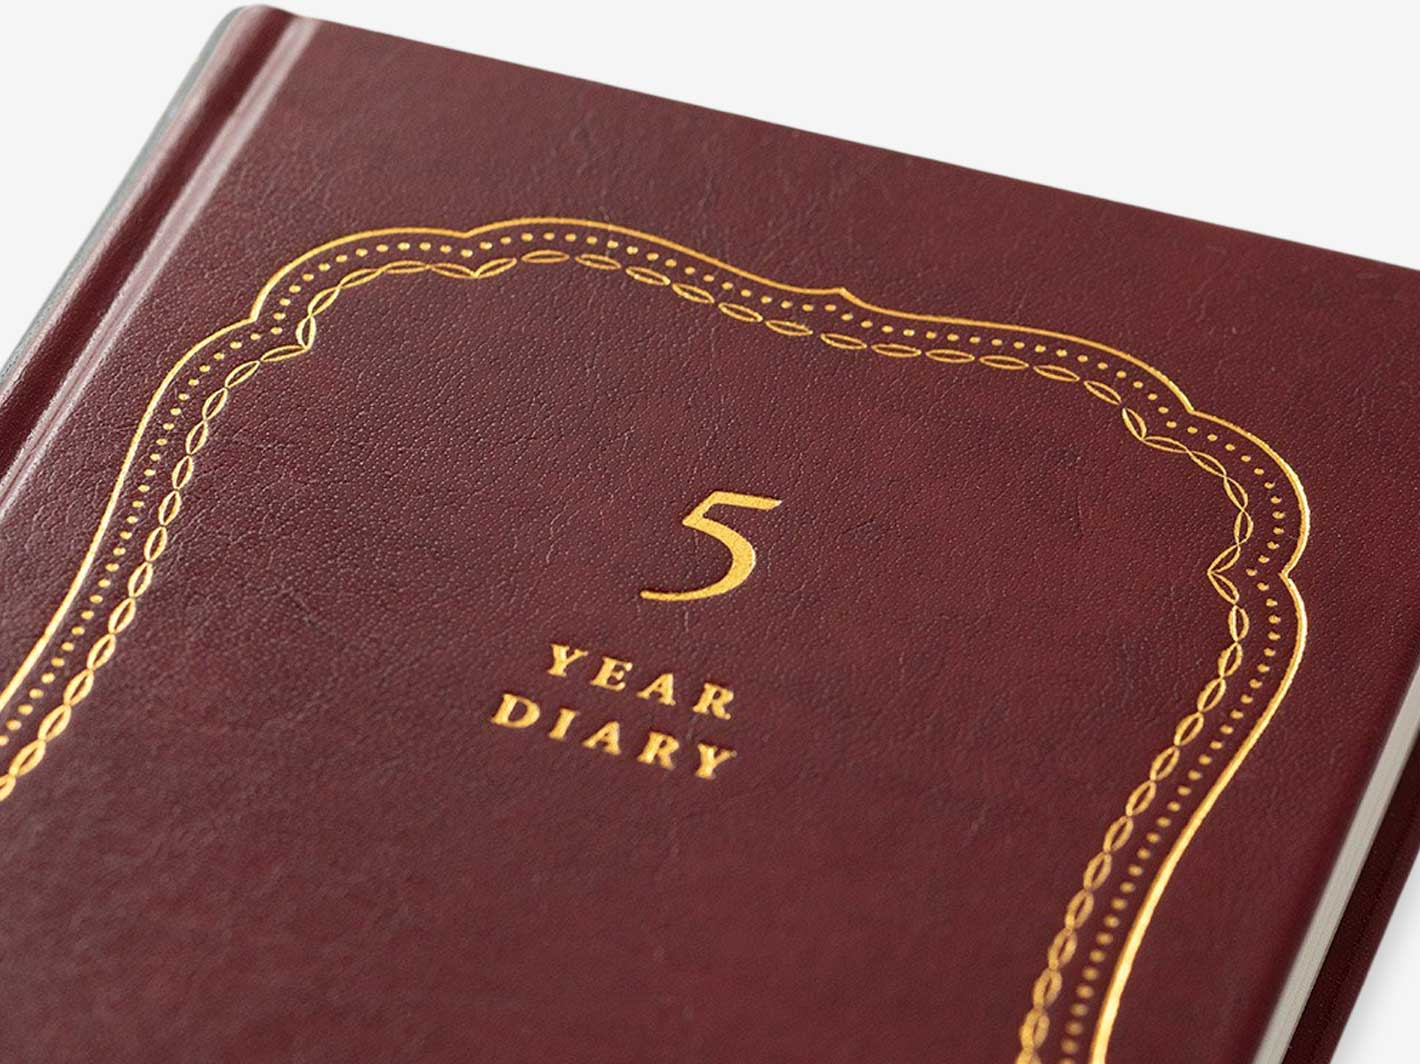 5 Year Diary Burgundy - Recycled Leather